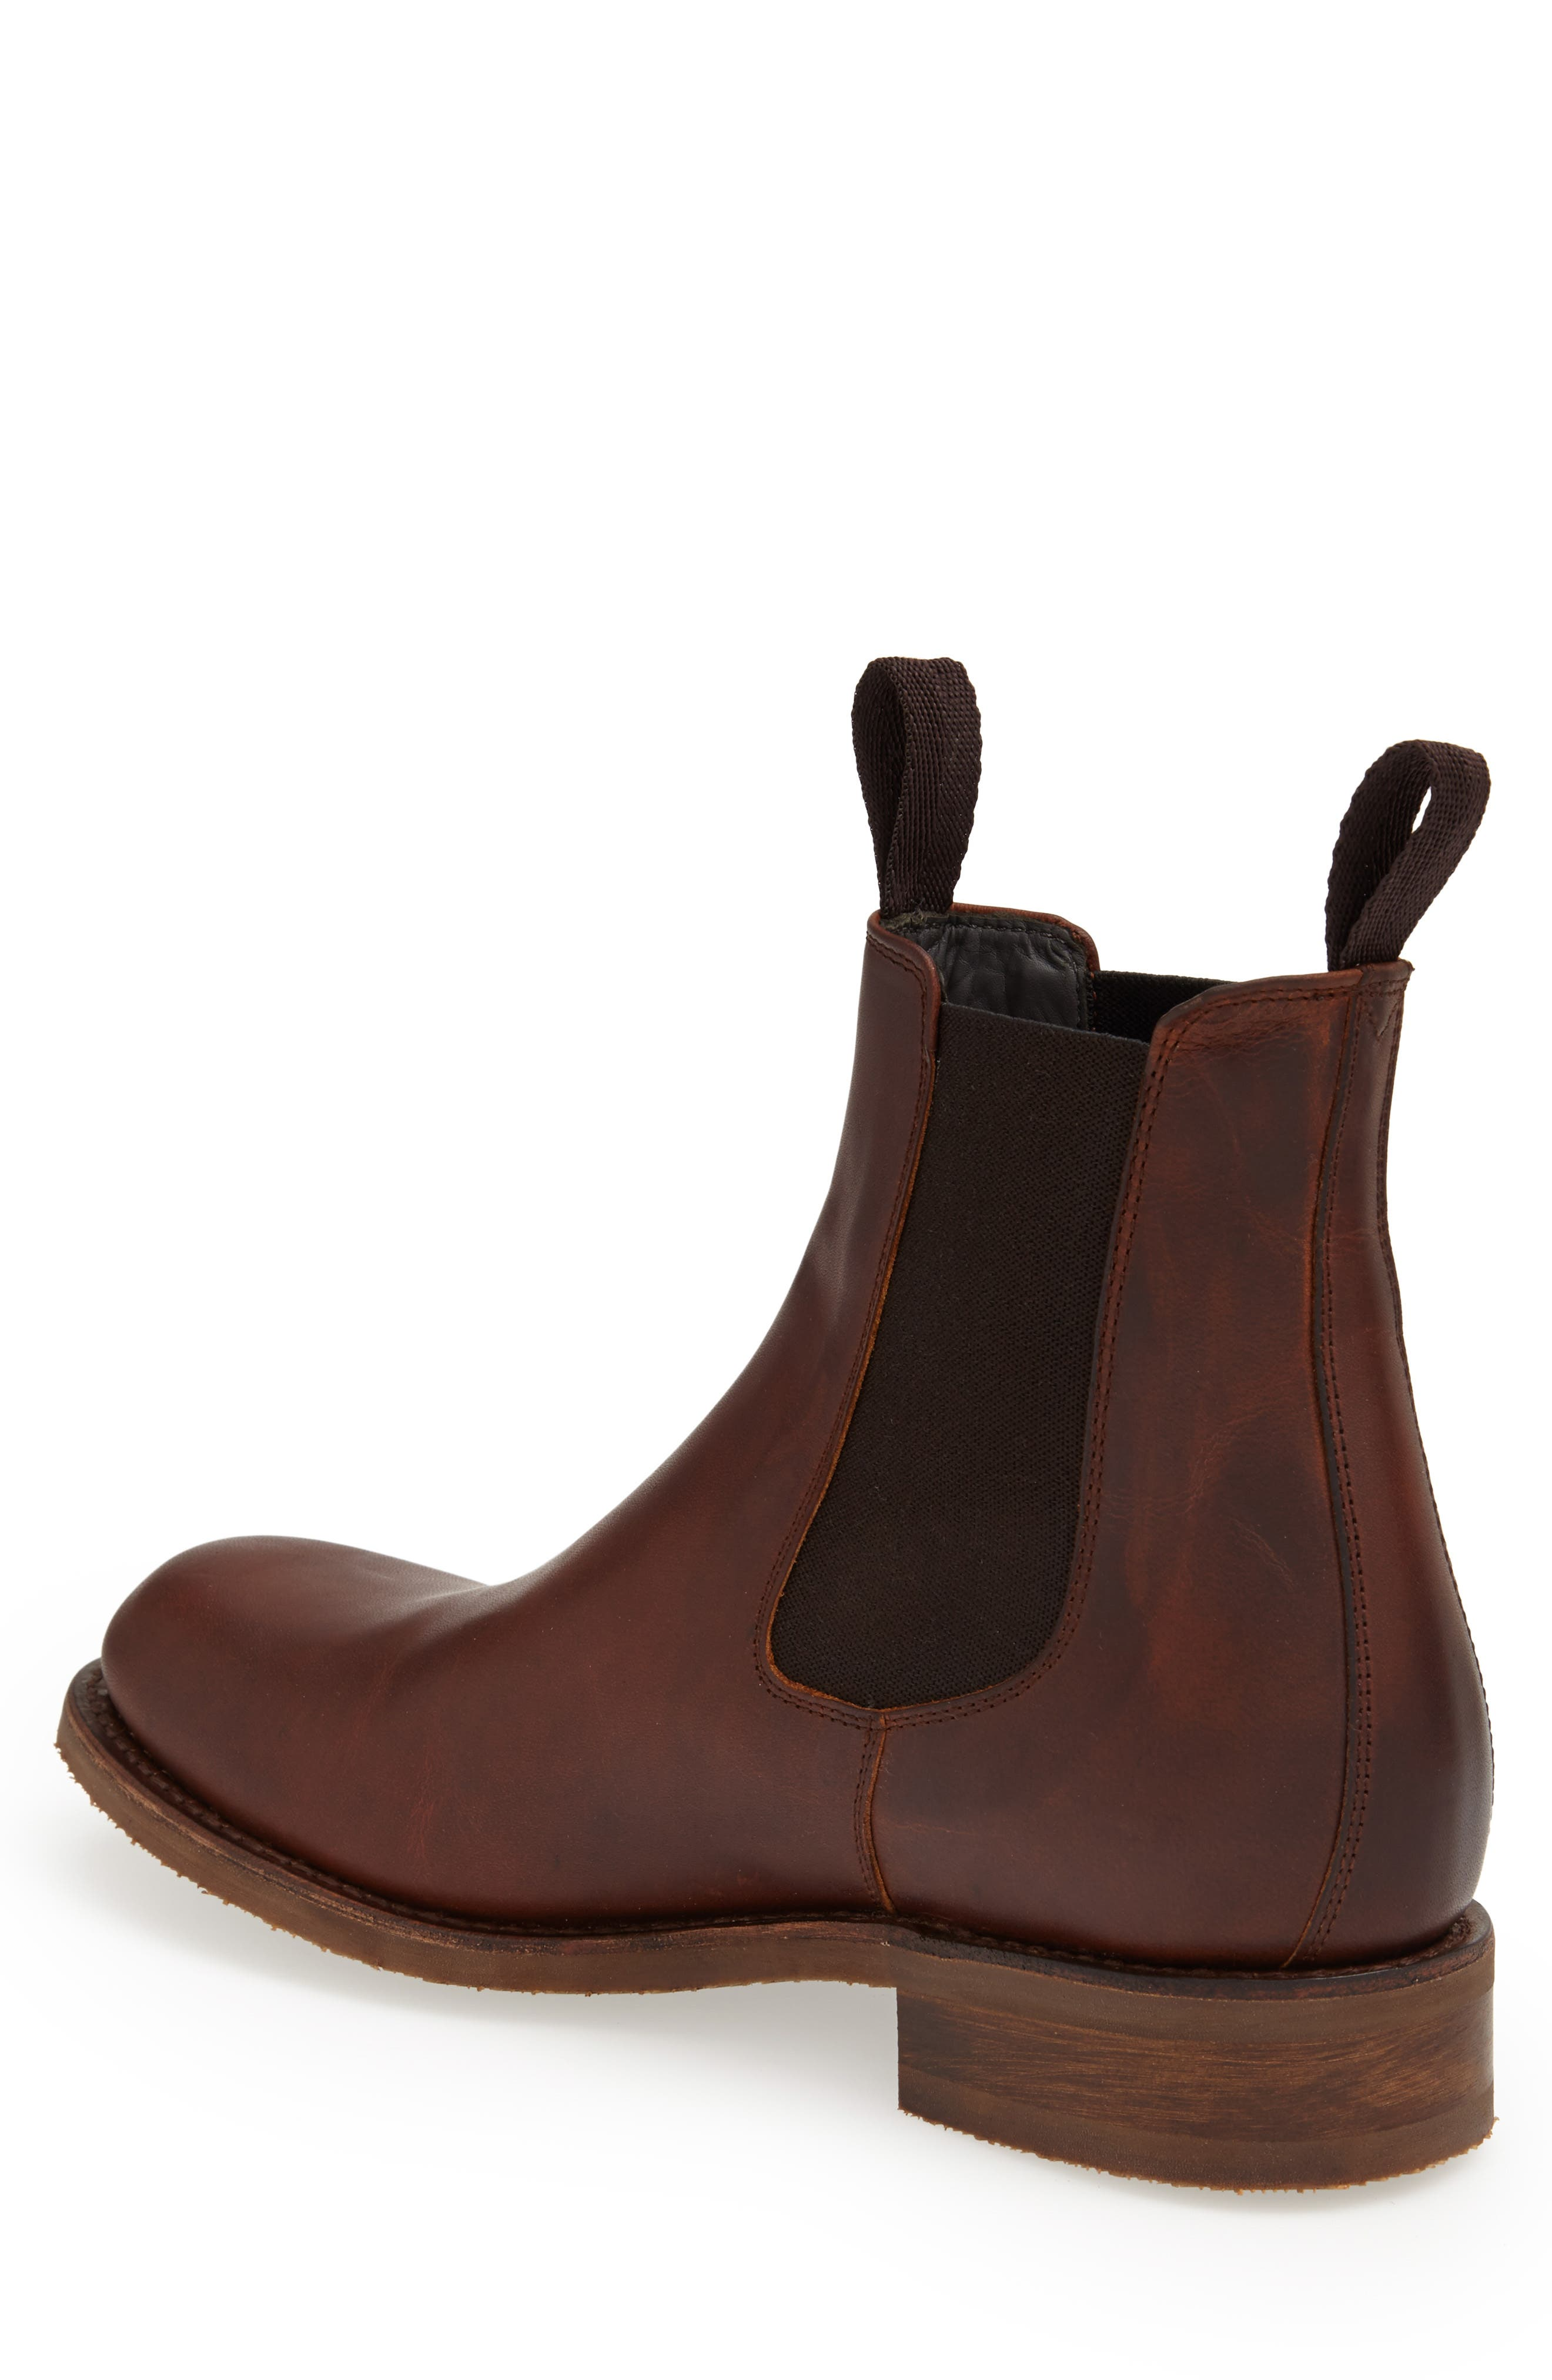 'Al' Chelsea Boot,                             Main thumbnail 1, color,                             TAN